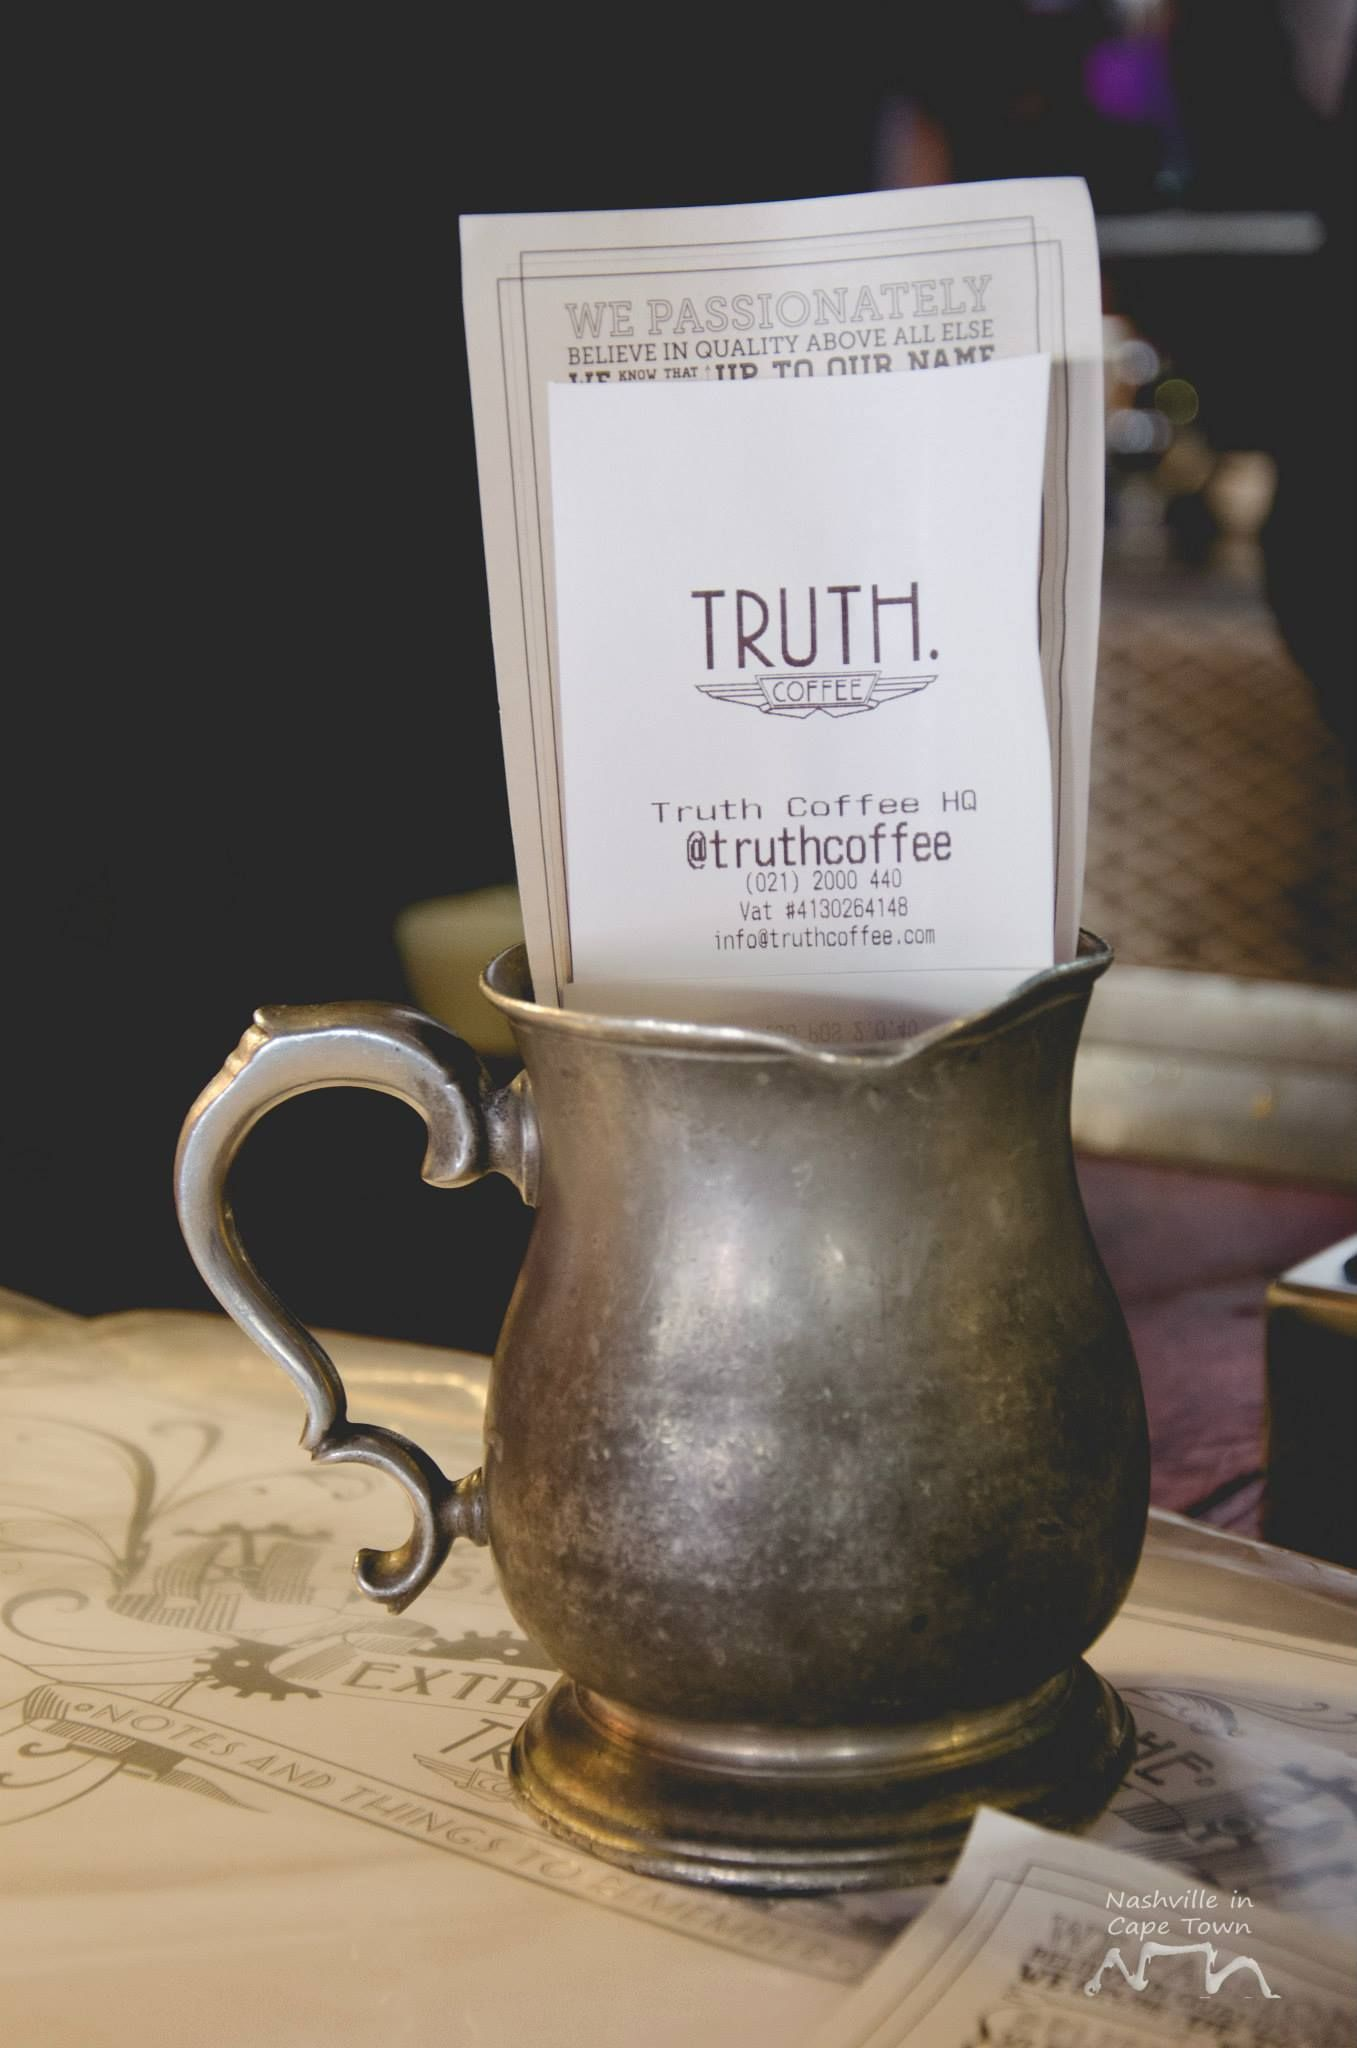 TRUTH coffee roasting